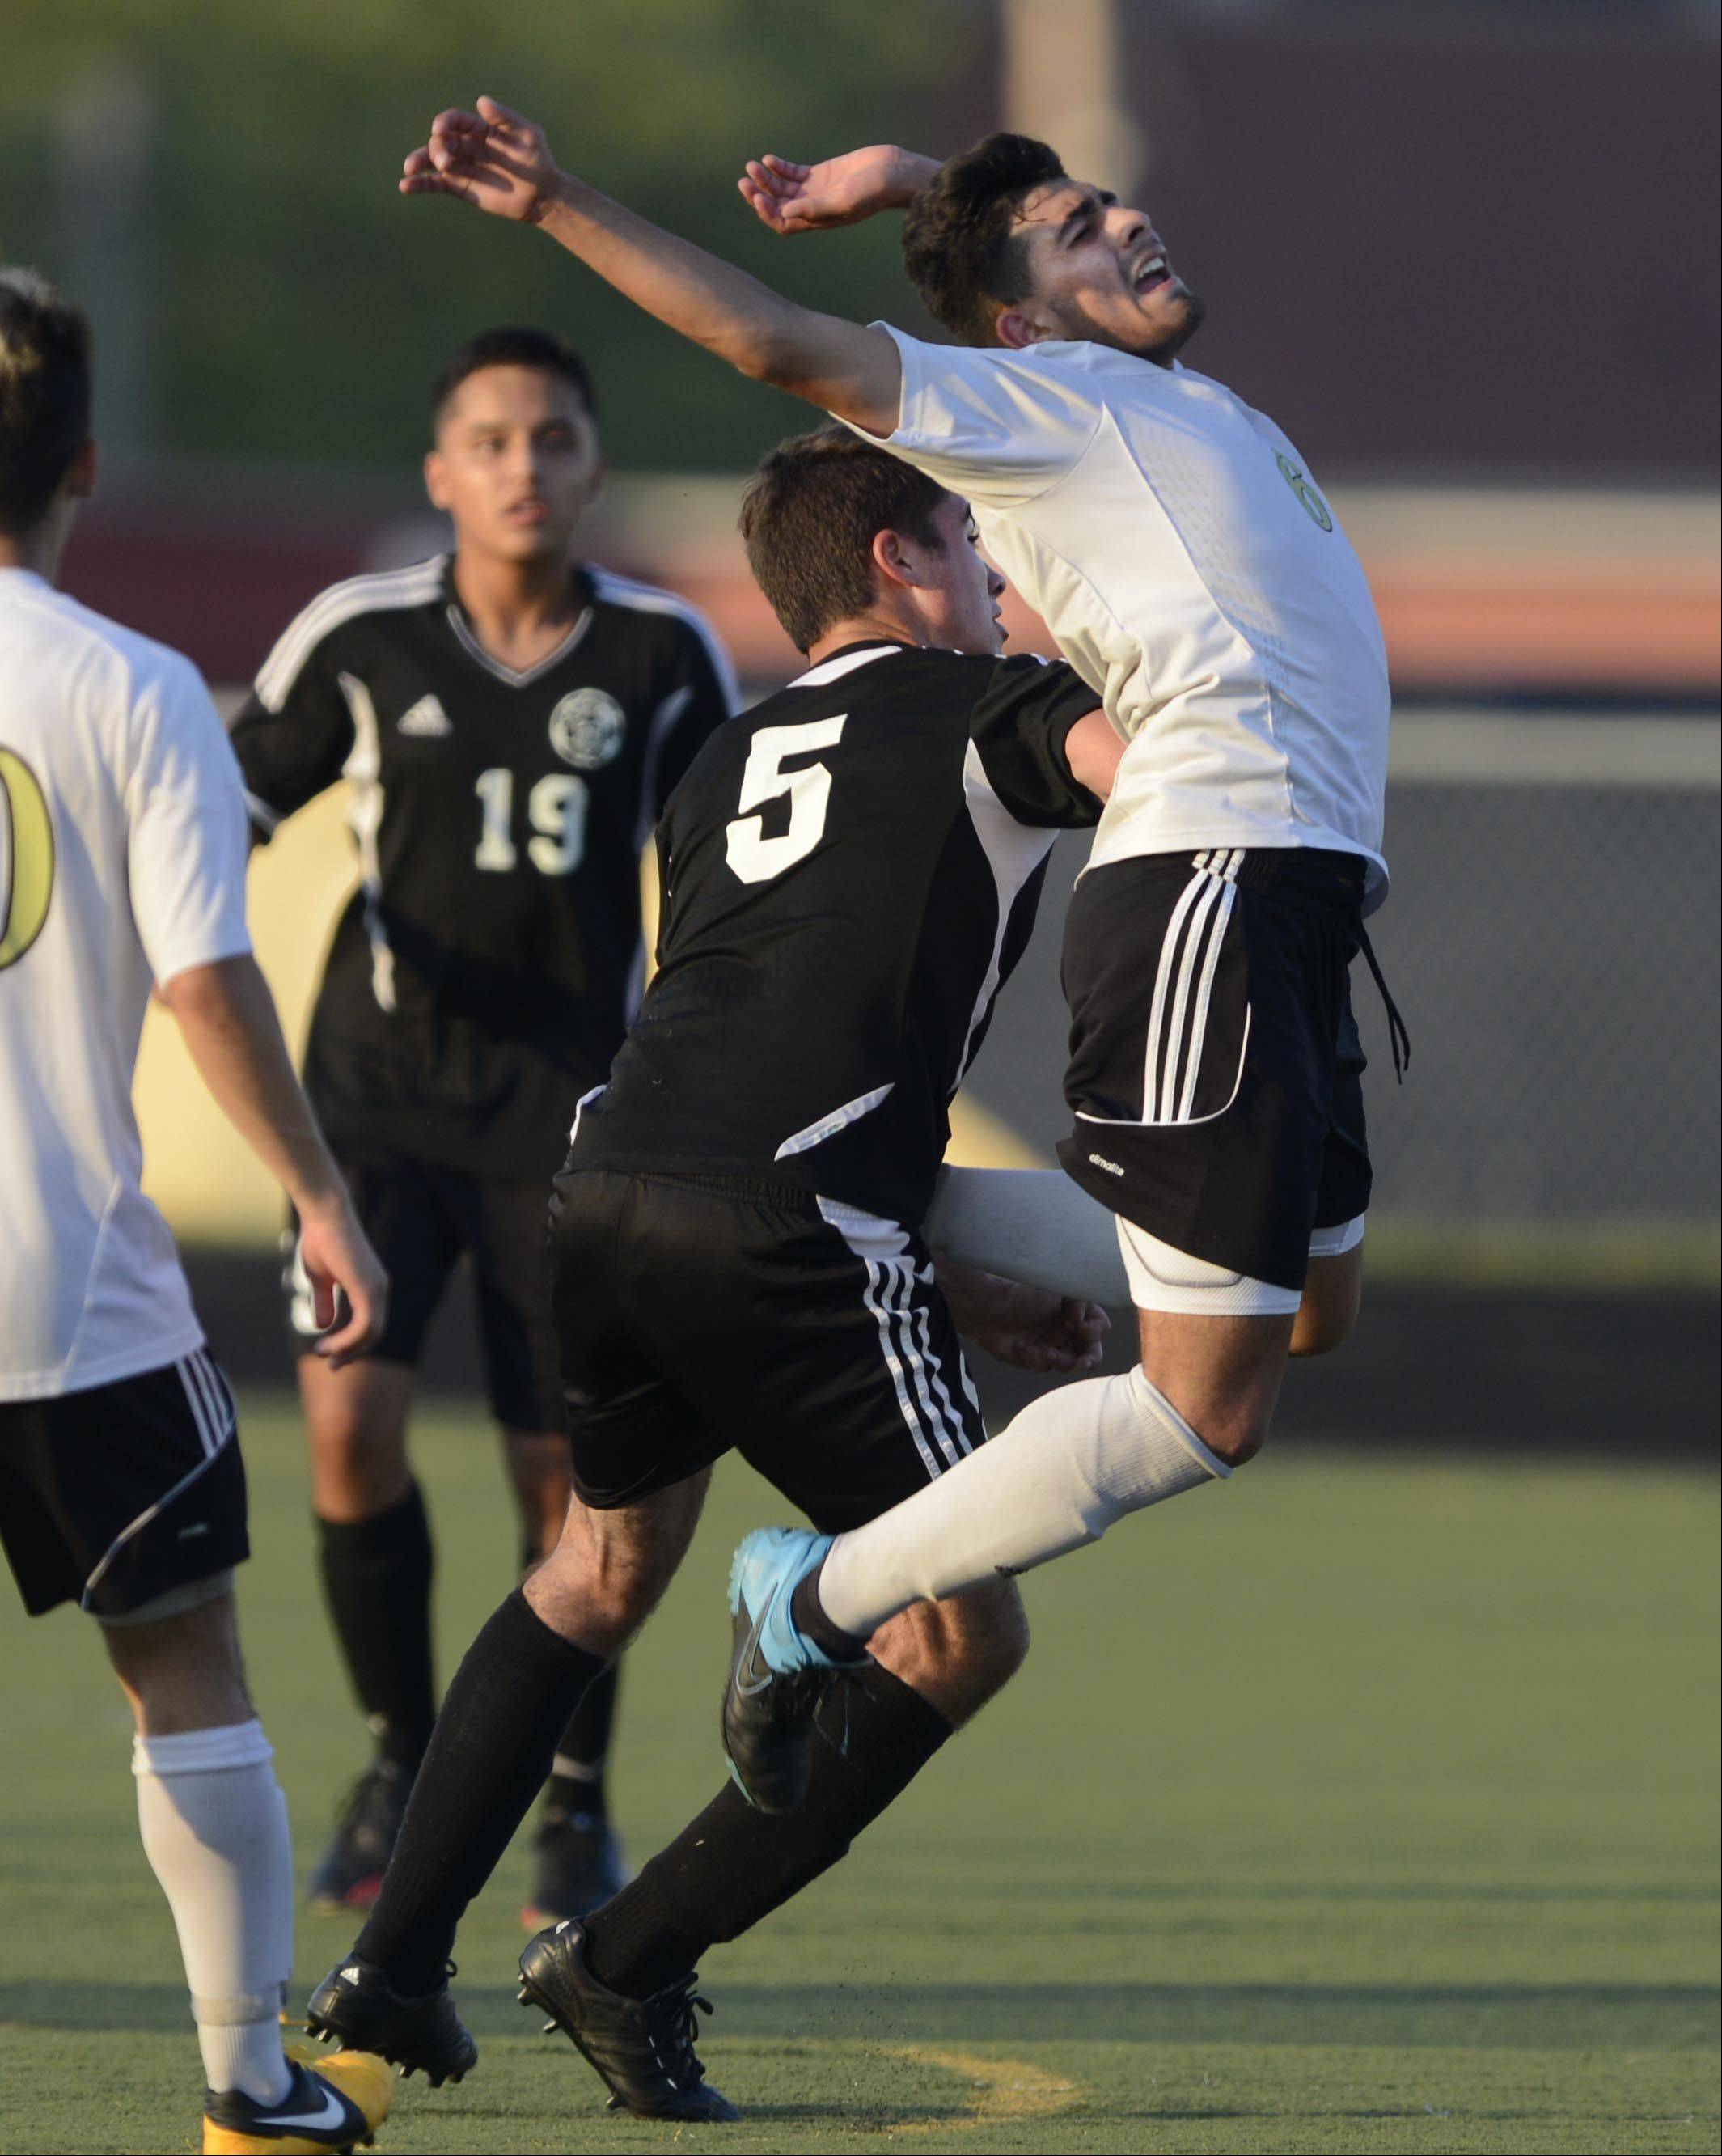 Streamwood's Christian Vences gets shoved away from a header by Kaneland's Anthony Parillo Monday in Streamwood.